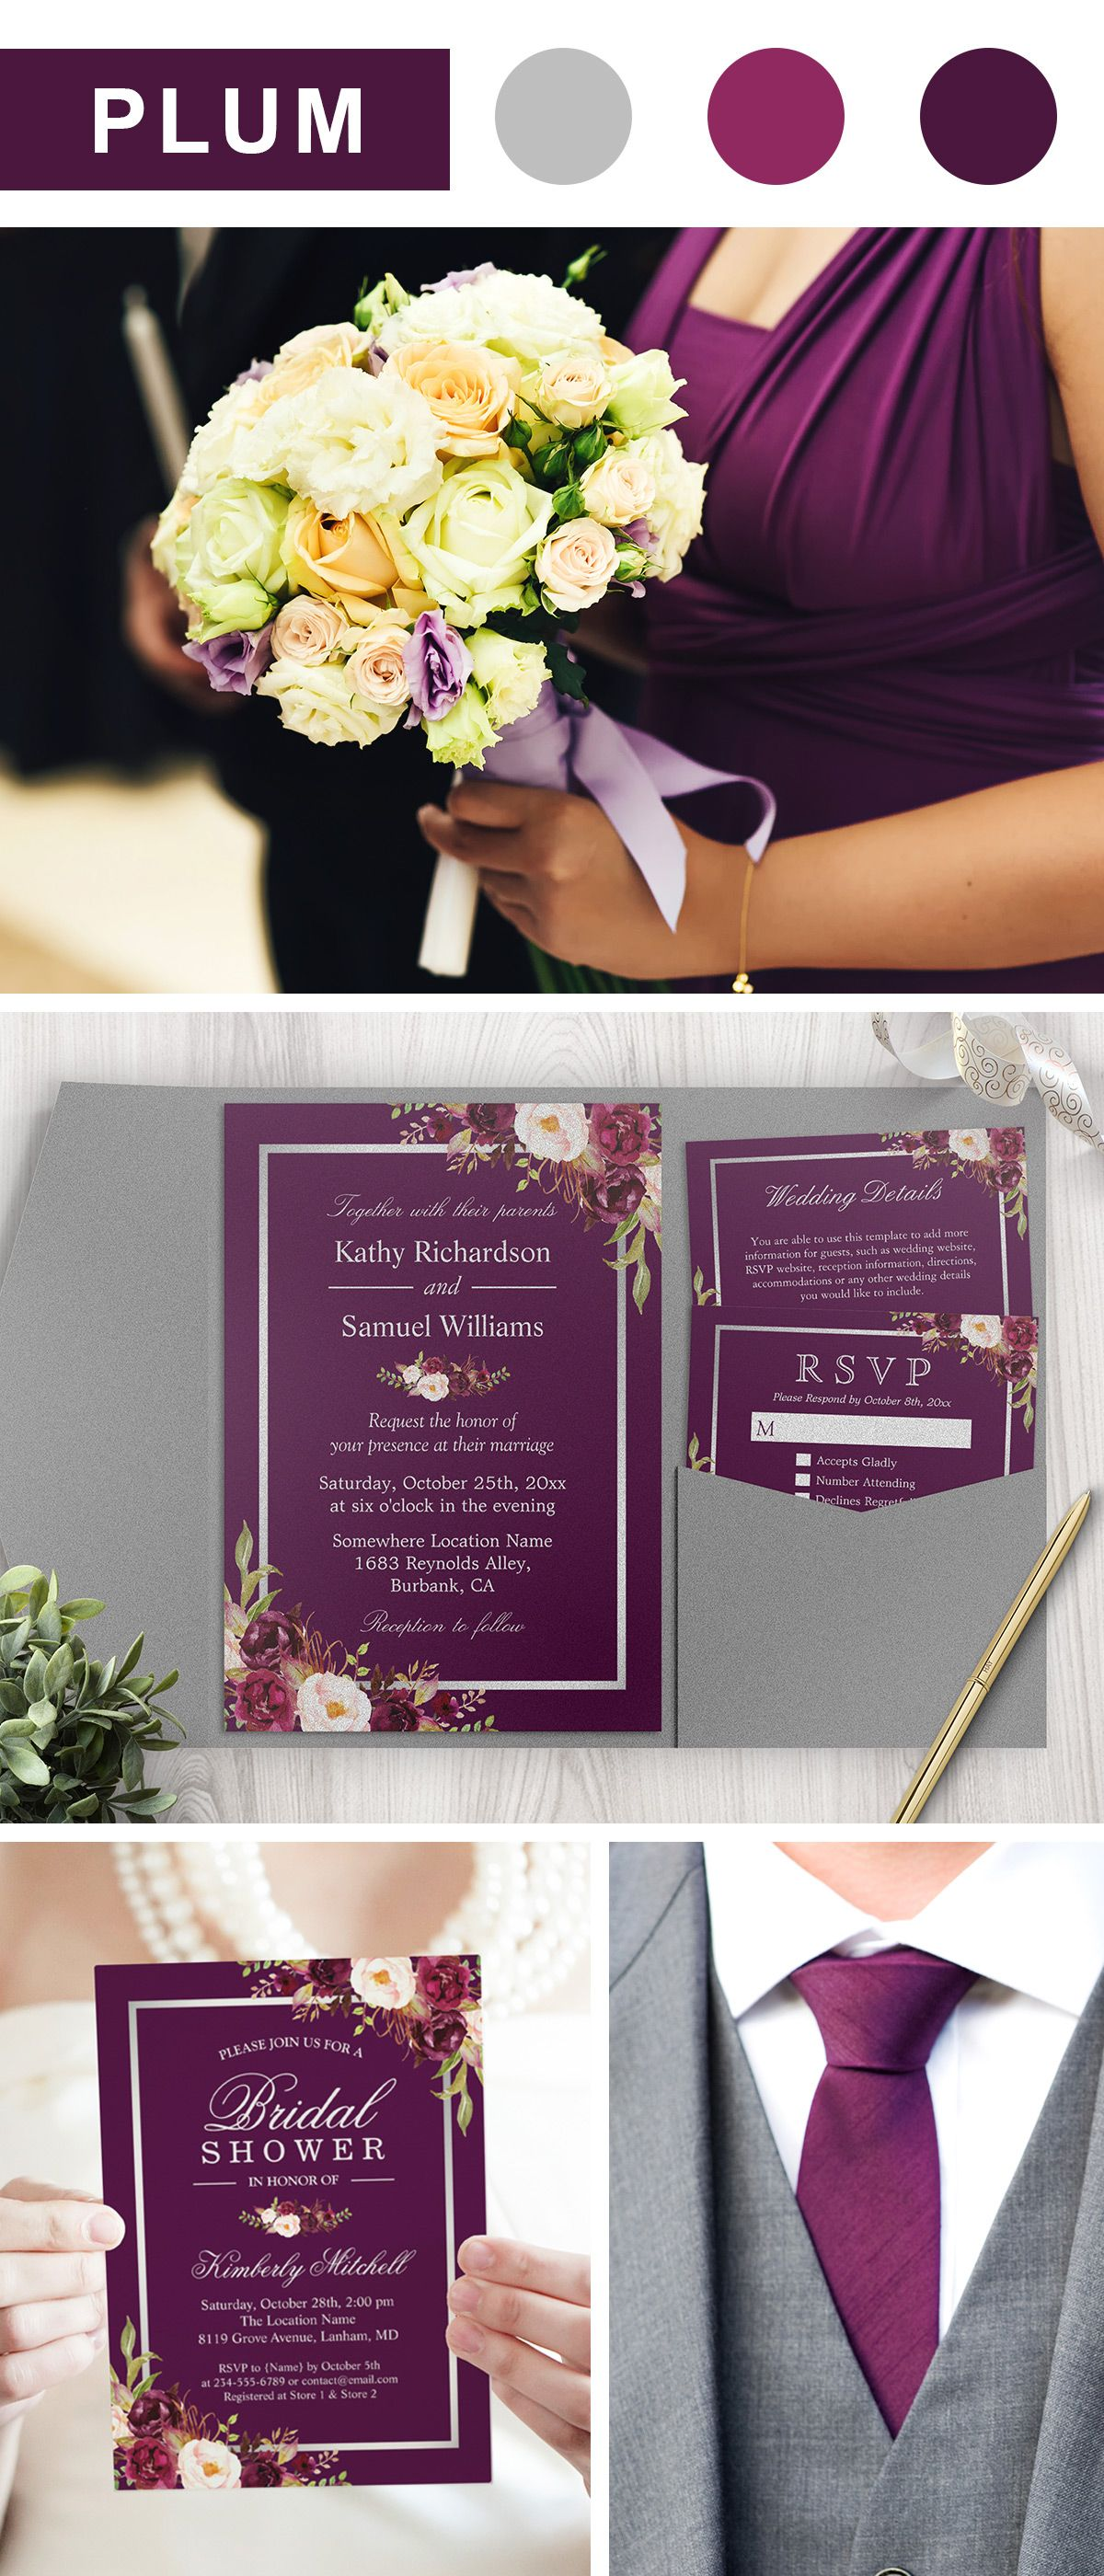 Plum Purple And Silver Gray Wedding Color Ideas Invitation Suite For Fall Winter